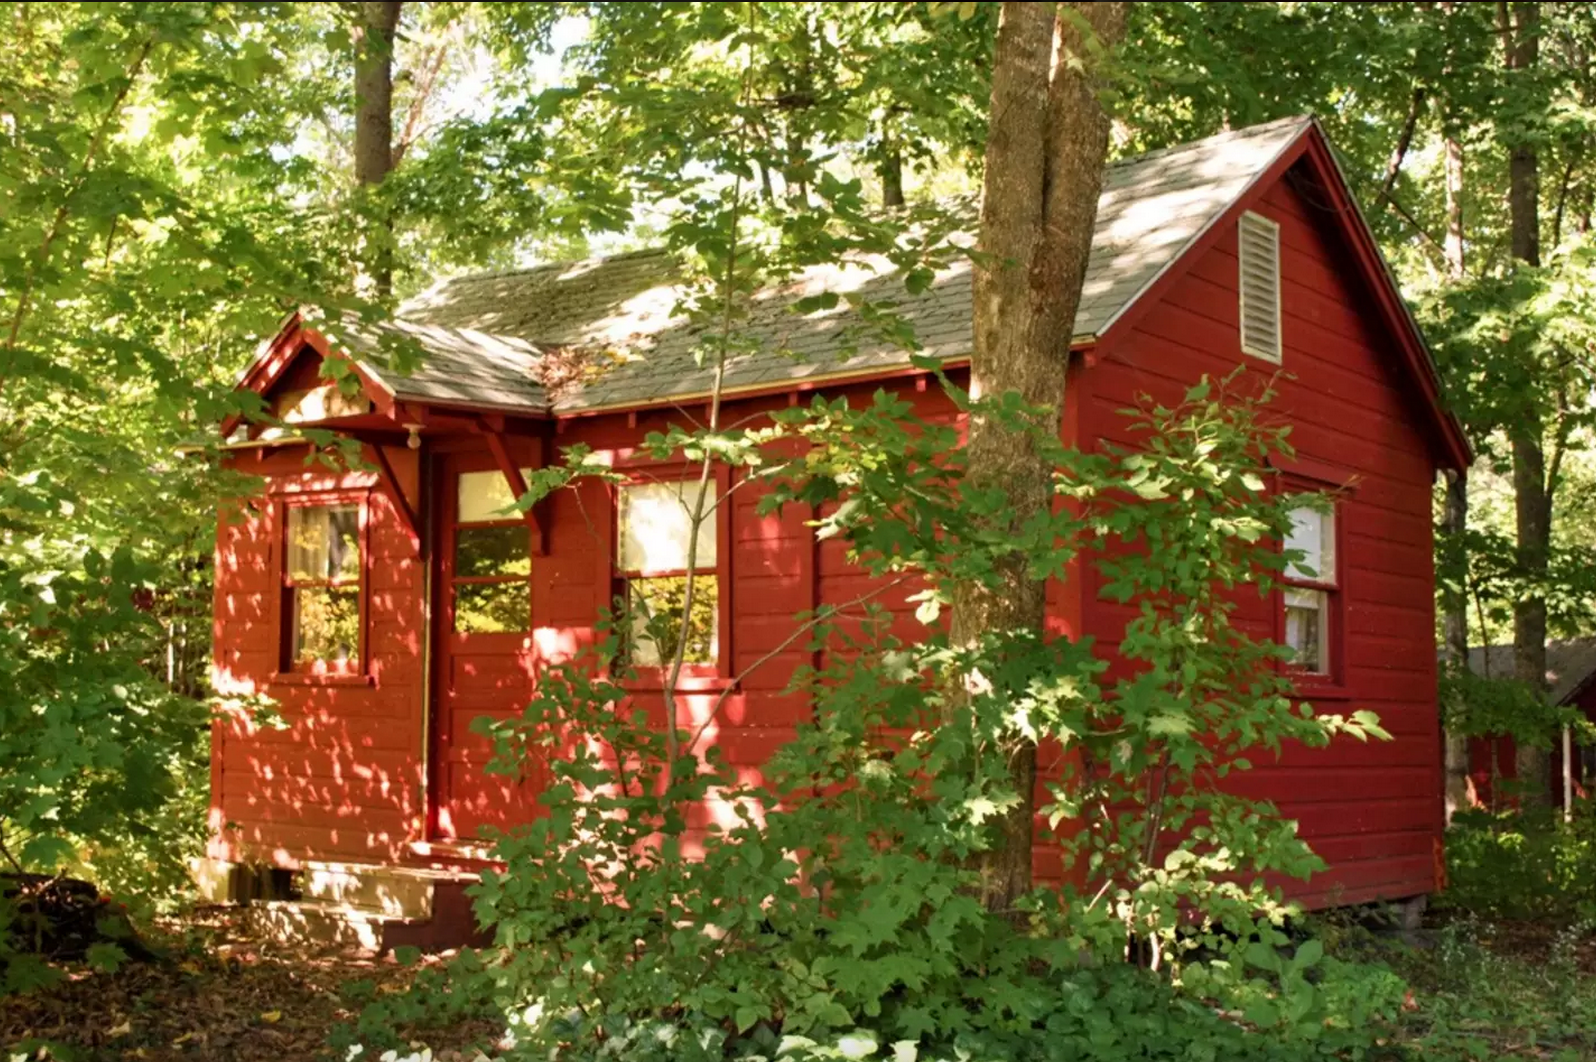 50 Tiny Houses For Rent - Tiny Home Rentals in Every State